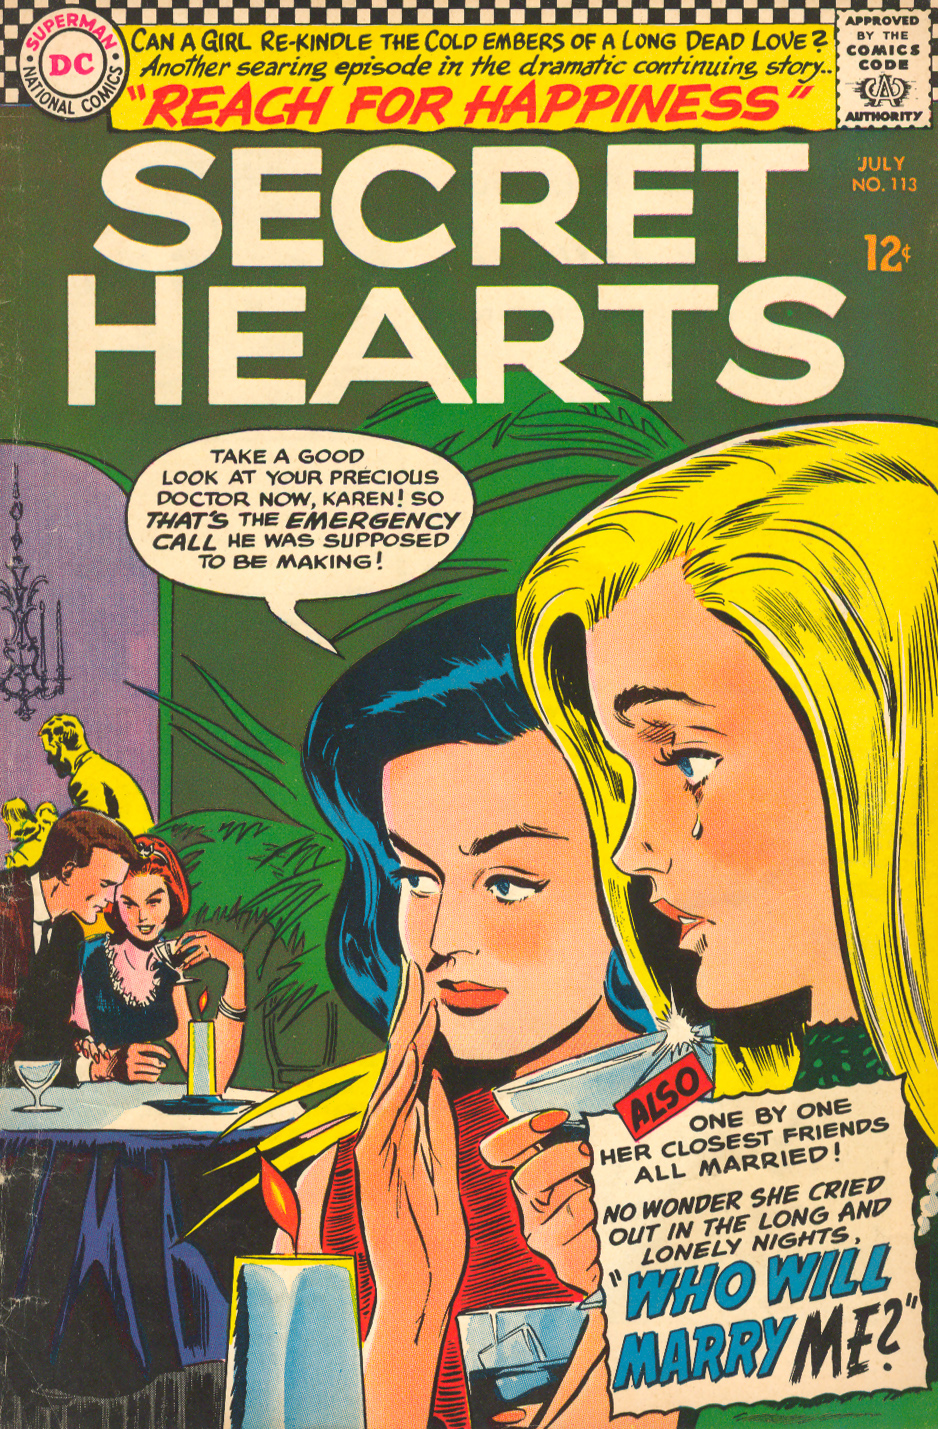 Secret Hearts romance comic book soap opera love story drama Peyton Place